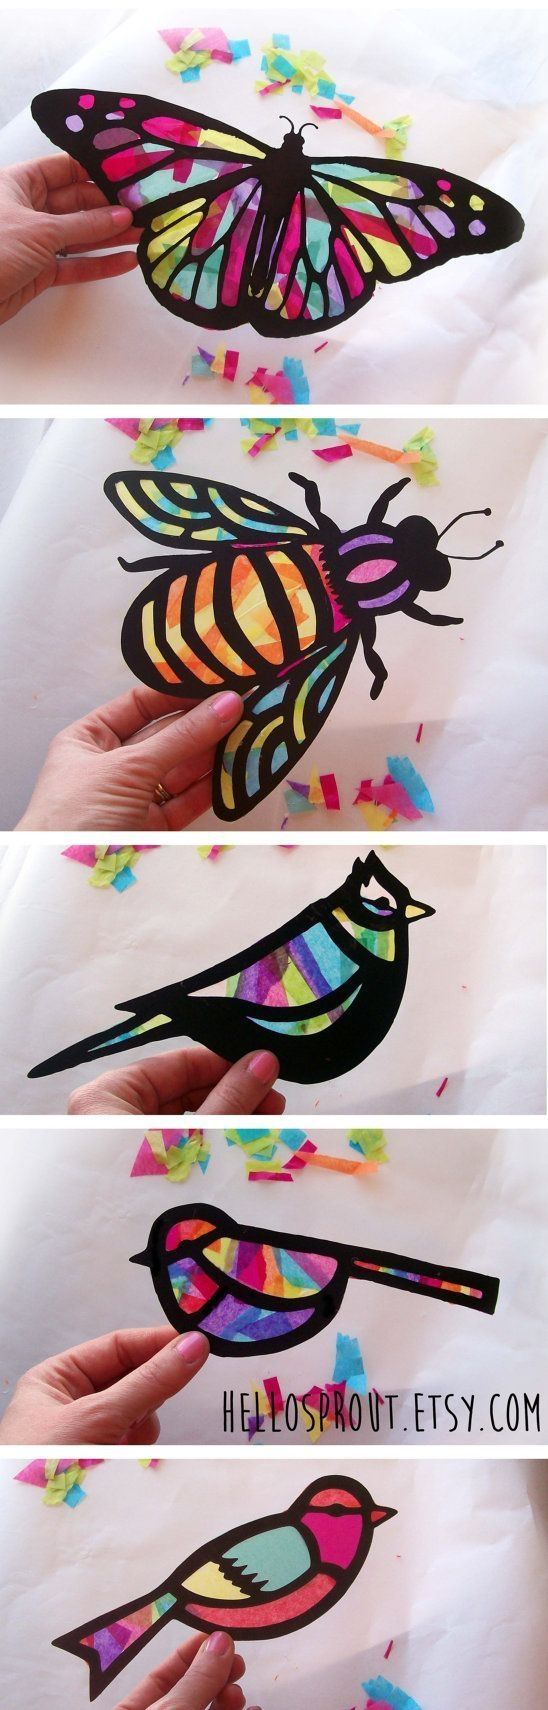 Arts and craft kits - Kids Craft Butterfly Stained Glass Suncatcher Kit With Birds Bees Using Tissue Paper